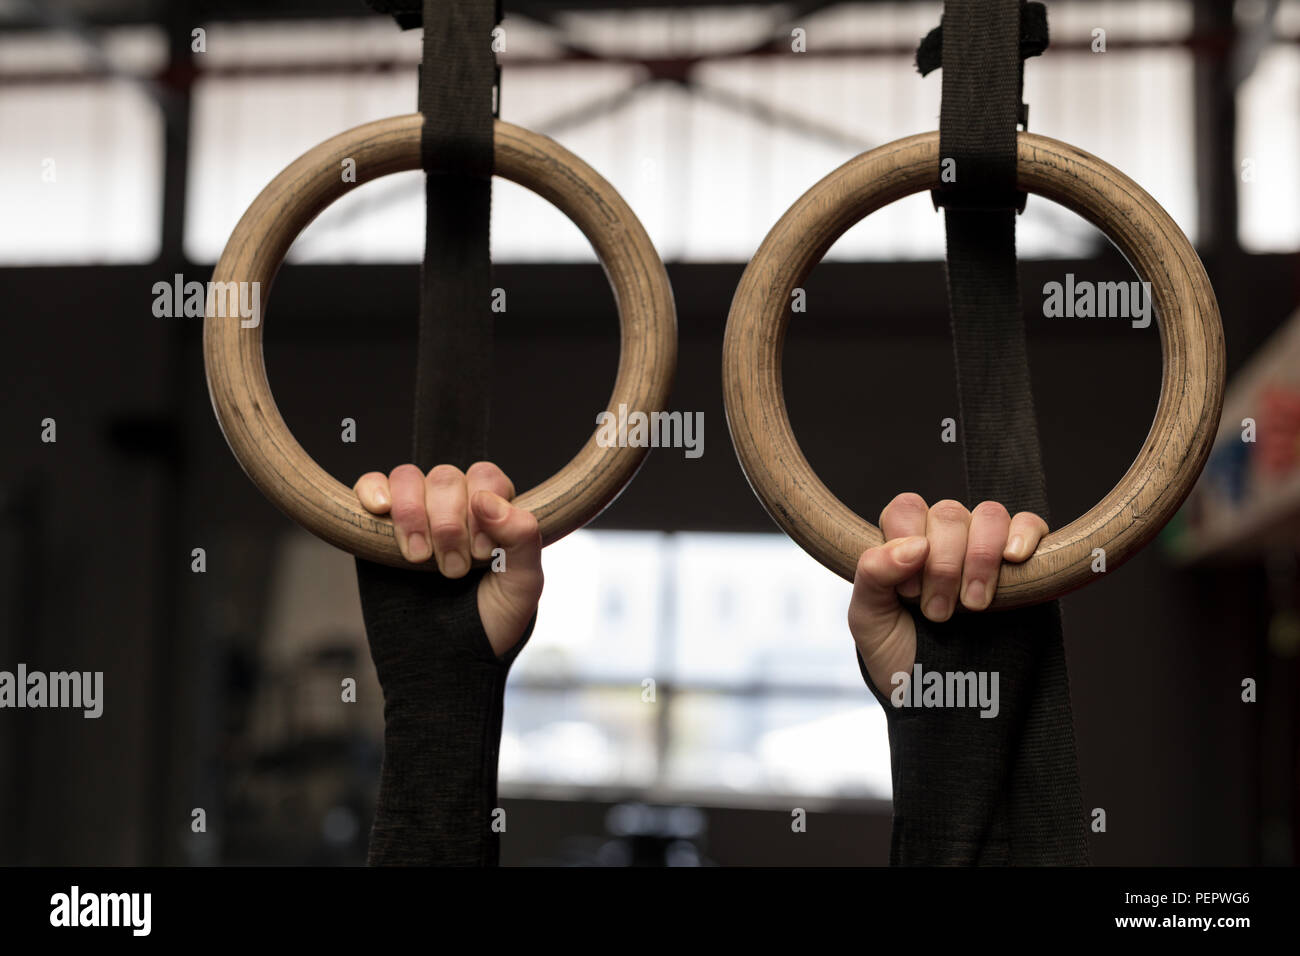 Woman exercising on gymnastic rings in fitness gym - Stock Image